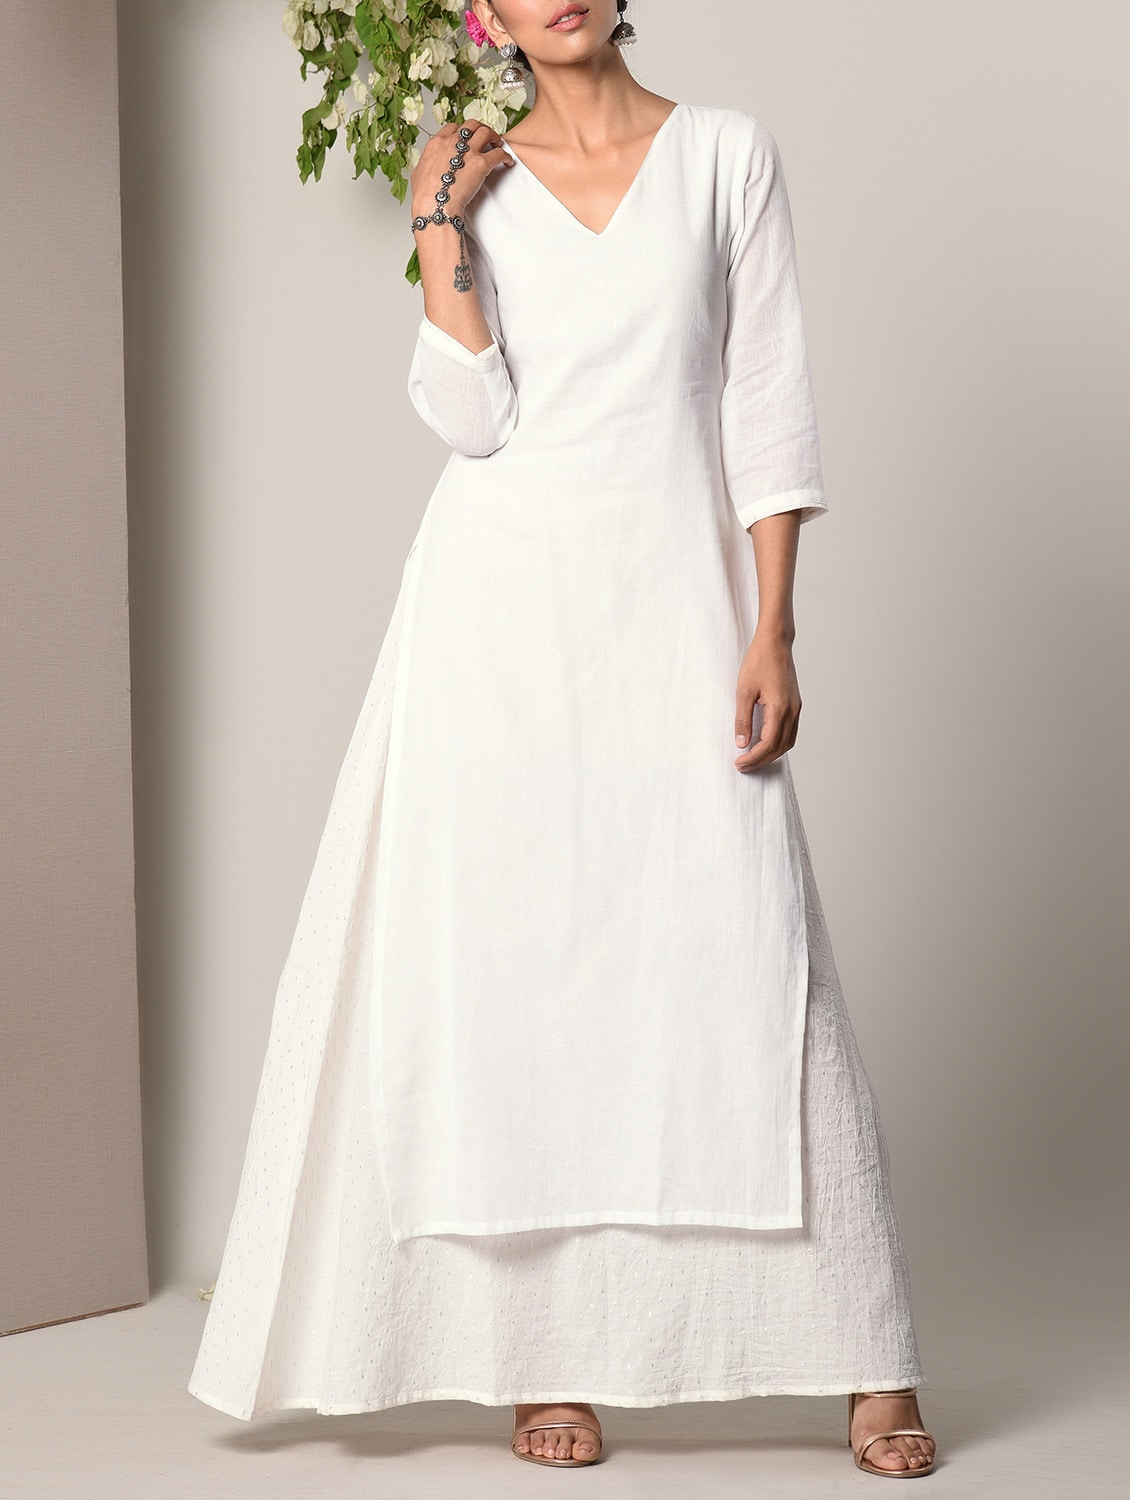 Buy White Layered Cotton Maxi Dress by Truebrowns - Online shopping for  Dresses in India  b1751c3a9